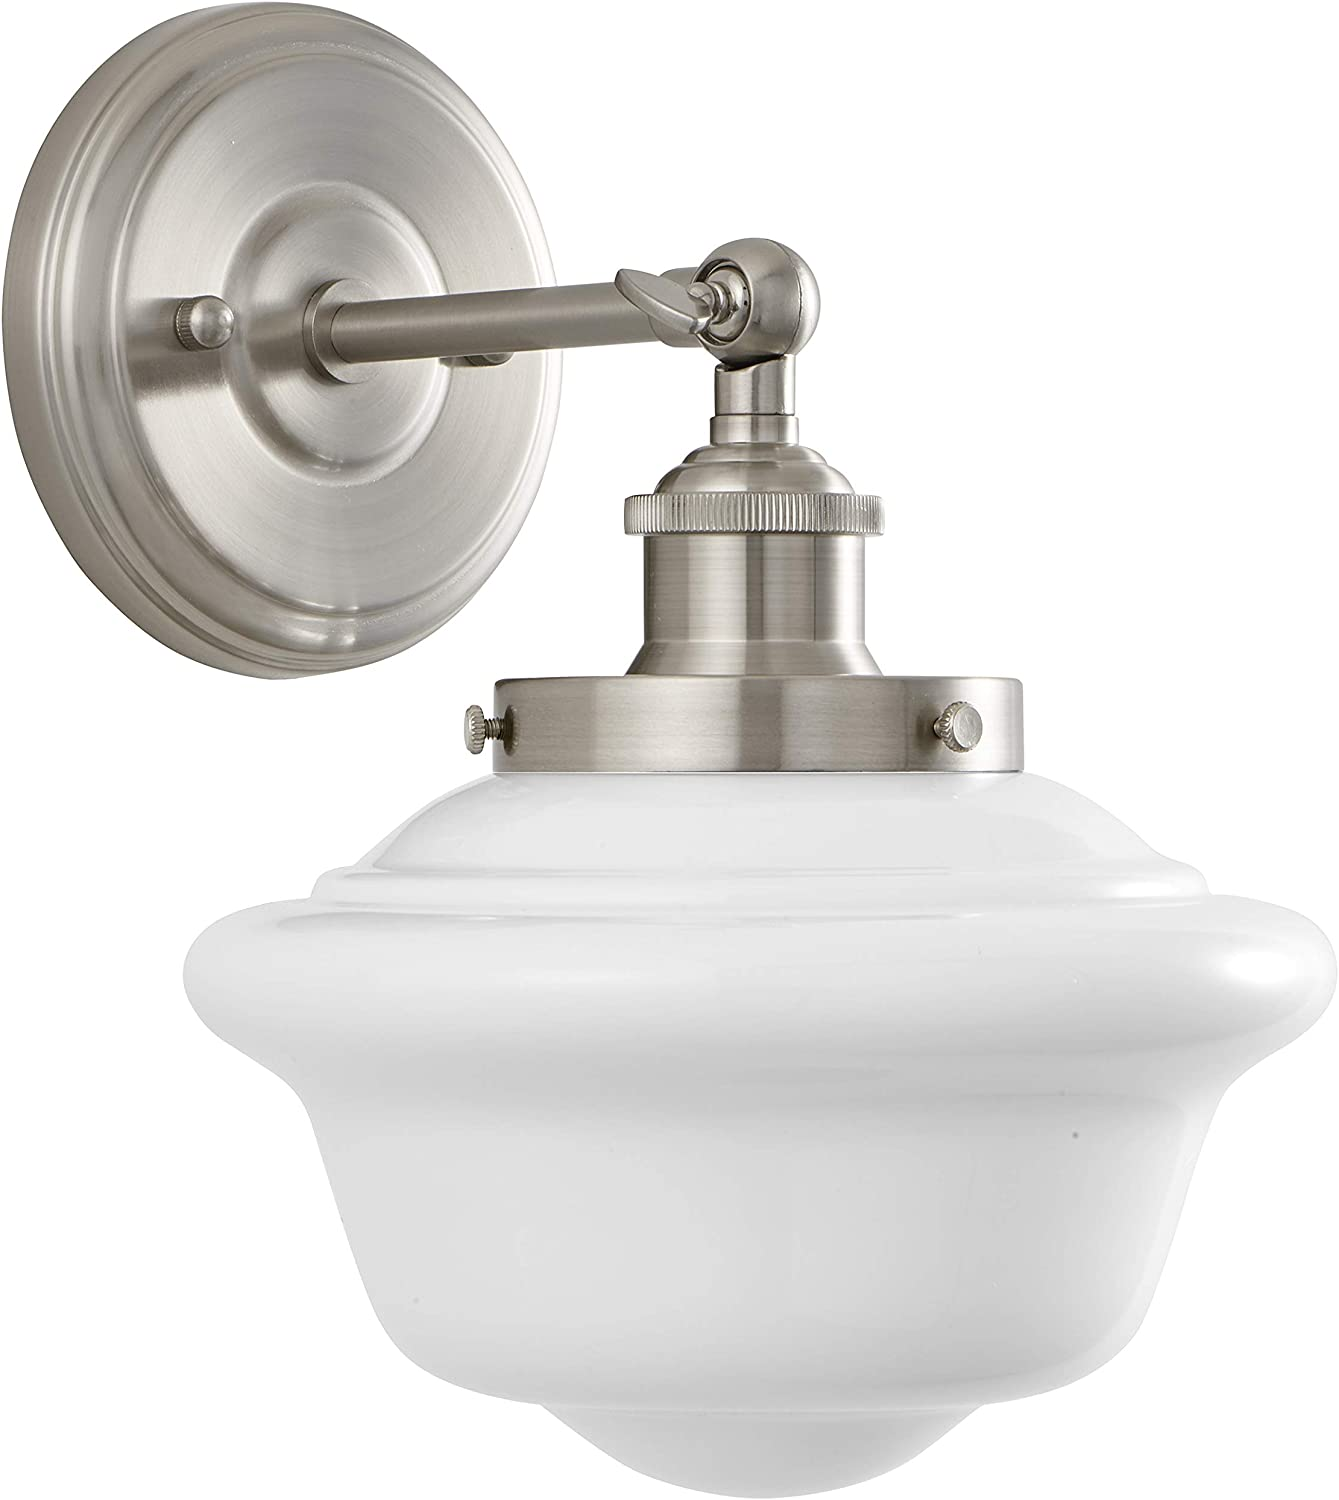 Lavagna 1 Light Bathroom Vanity Brushed Nickel with Milk Glass Linea di Liara LL-WL271-MILK-BN